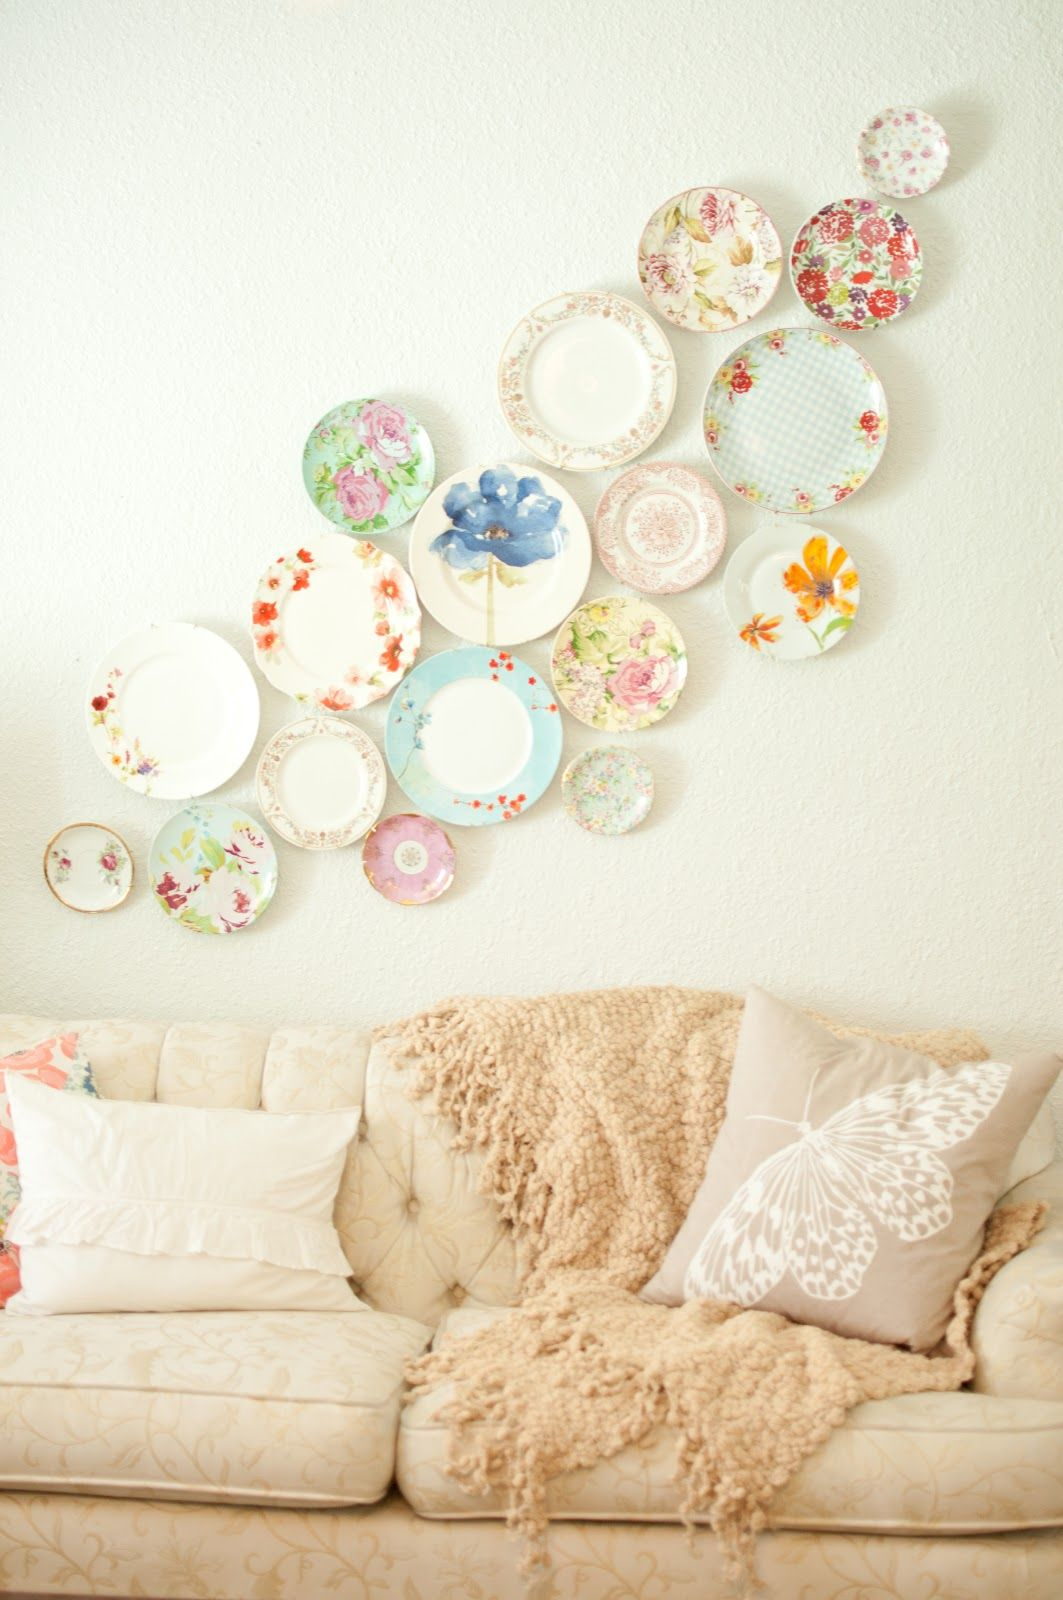 I Like The Flow For Kitchen Or Dining Room Decorating With Vintage Plates DIY Plate Wall Ideas Eat Well 101